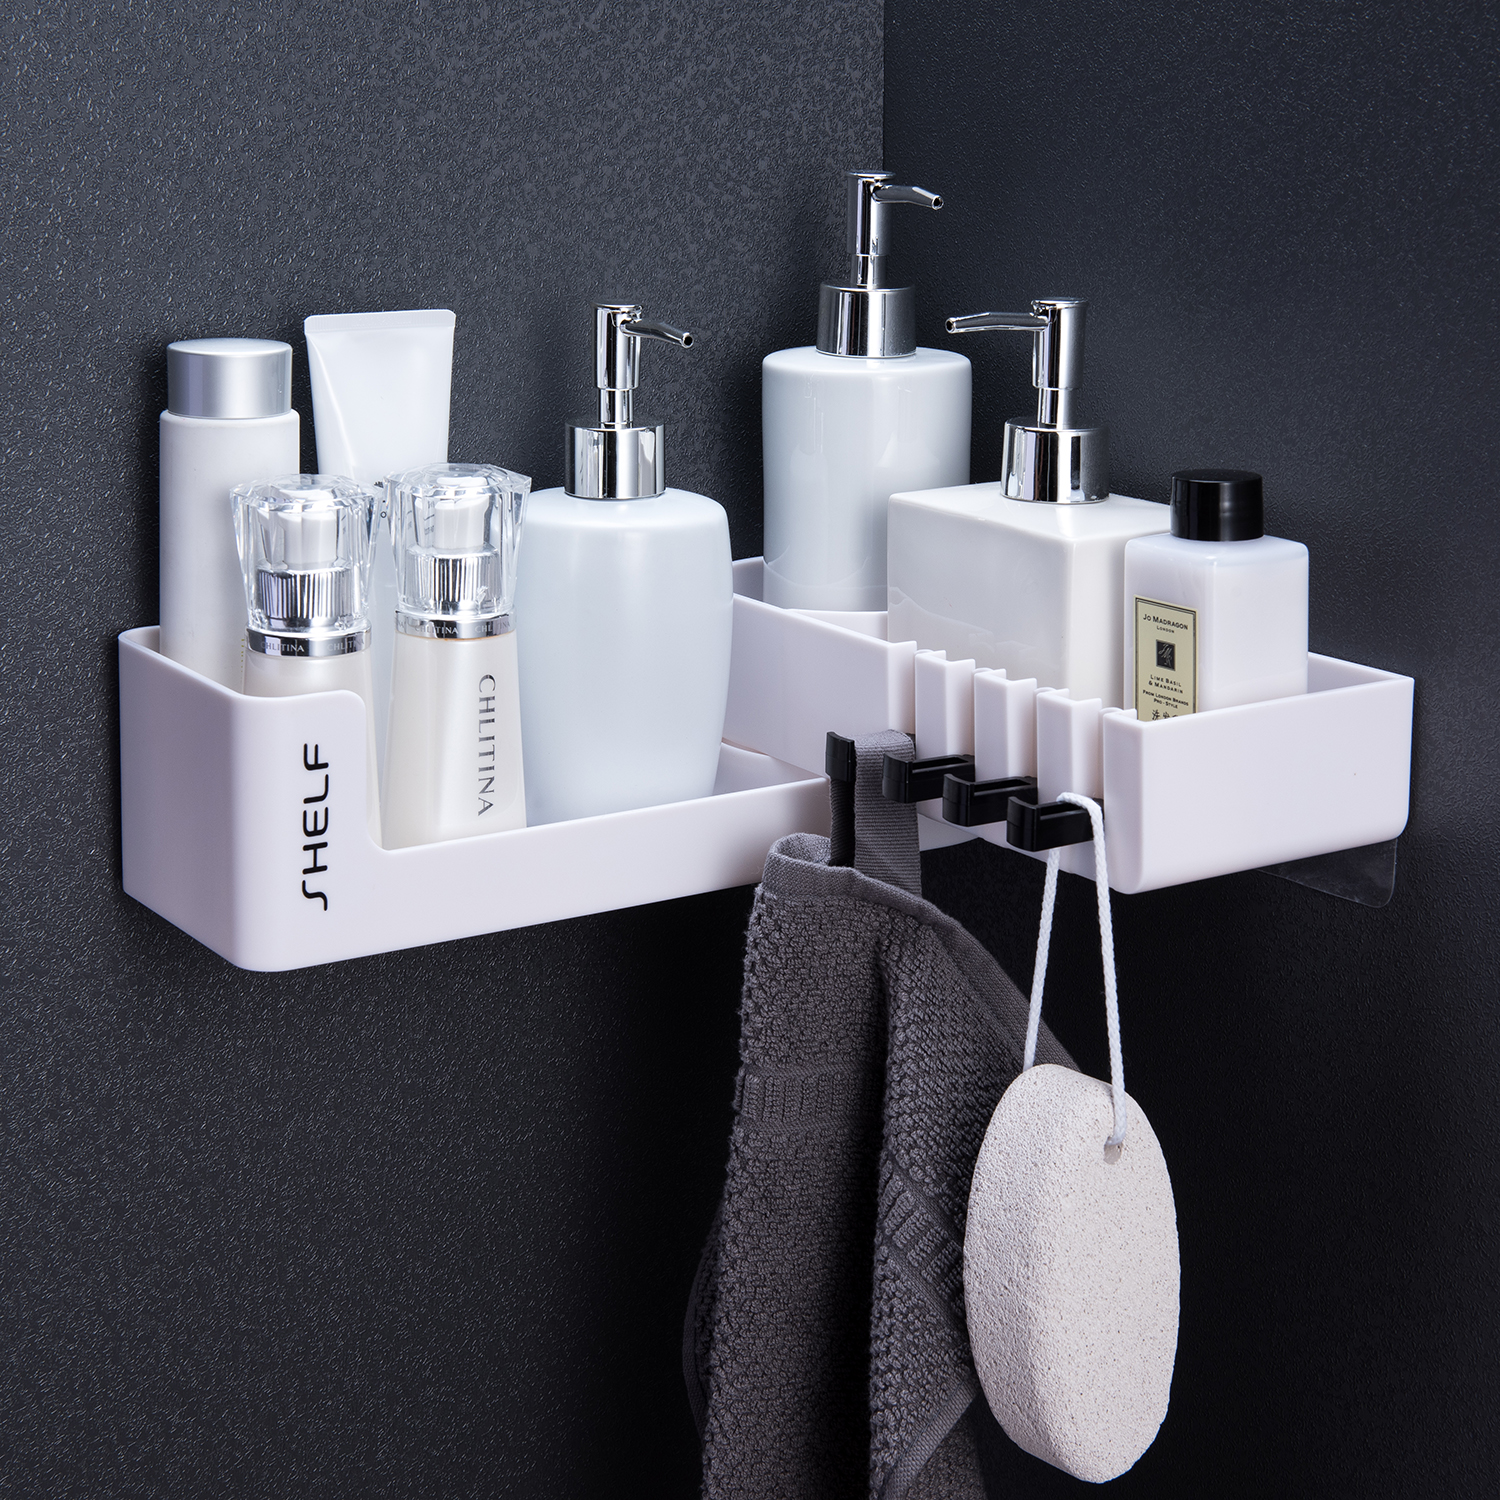 Bathroom Shelf Shower Corner Storage Holder Shelves Organizer Rotatable Wall Mounted Bath Accessories Bathroom Shampoo Holder